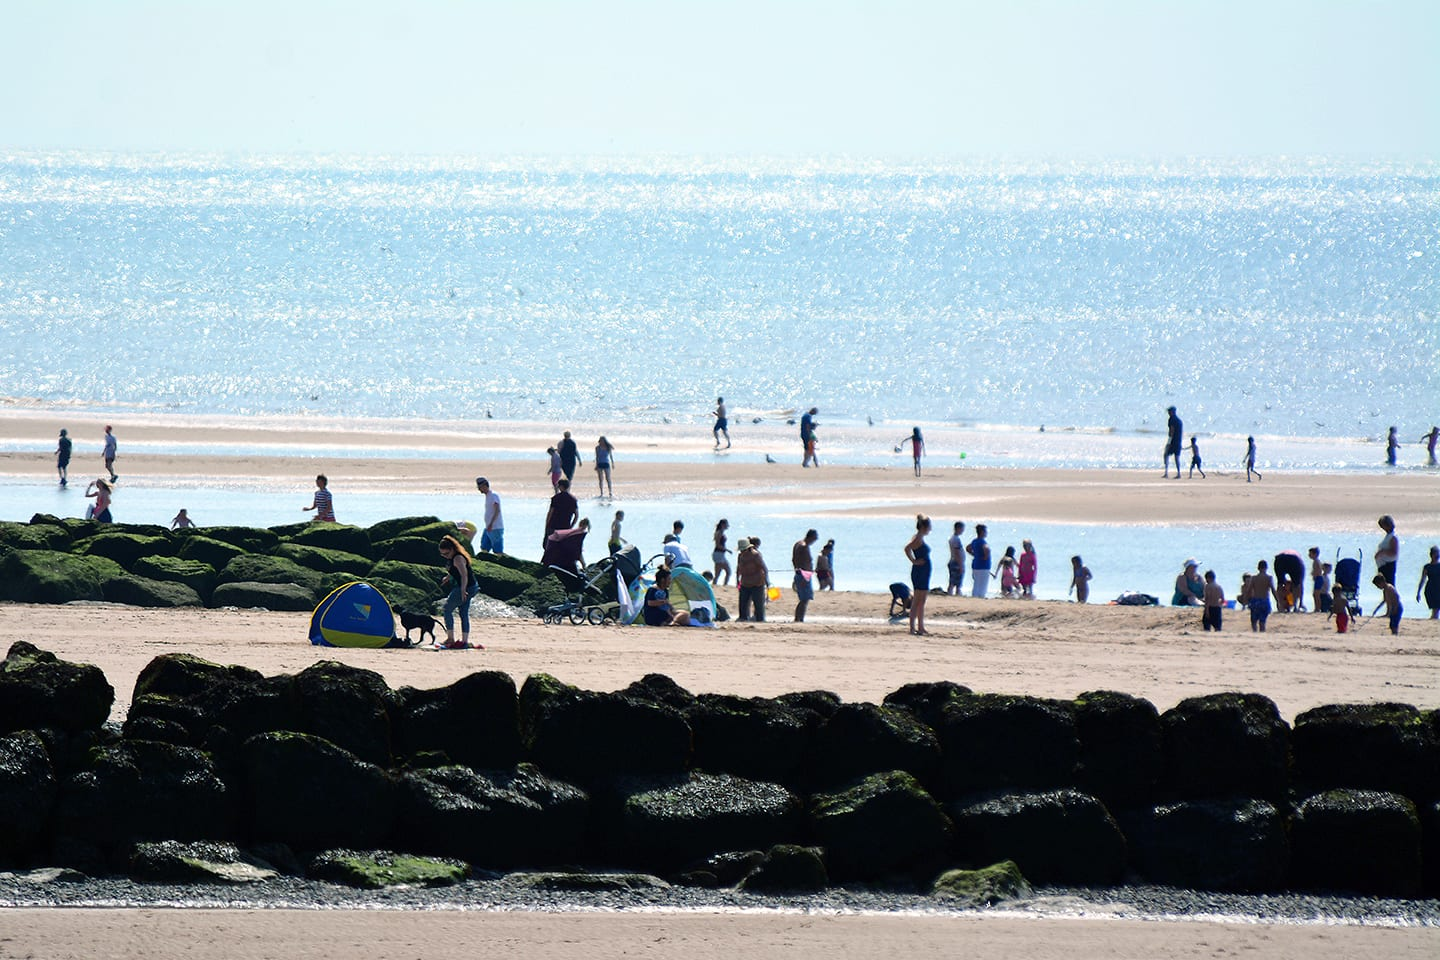 Cleveleys beach in the sunshine